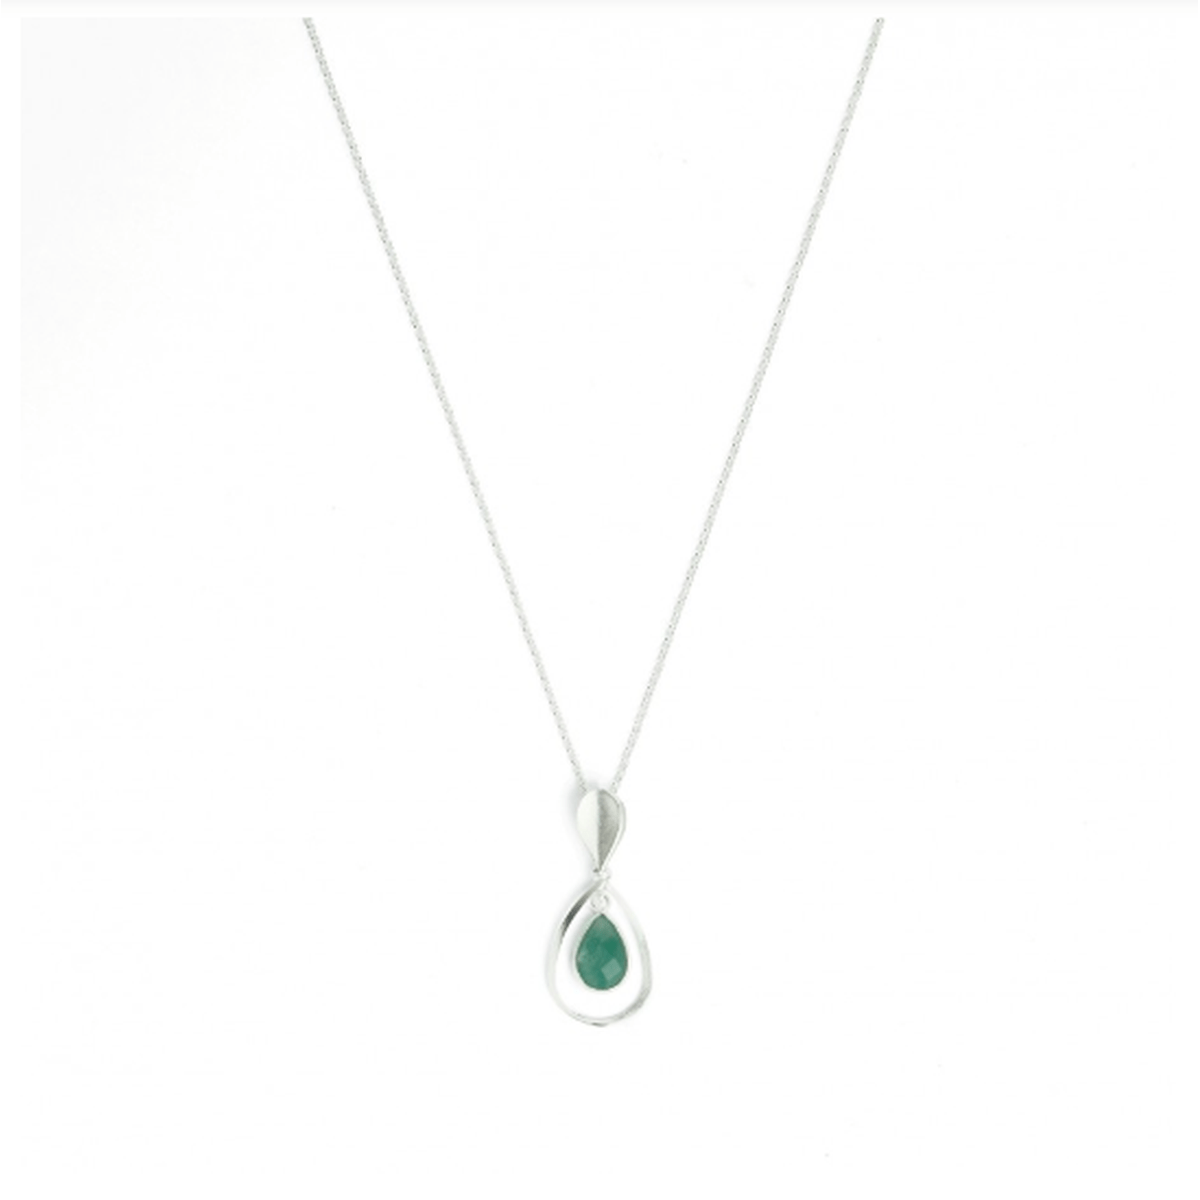 Sequanni Amazonite Necklace - 87851404-Bernd Wolf-Renee Taylor Gallery